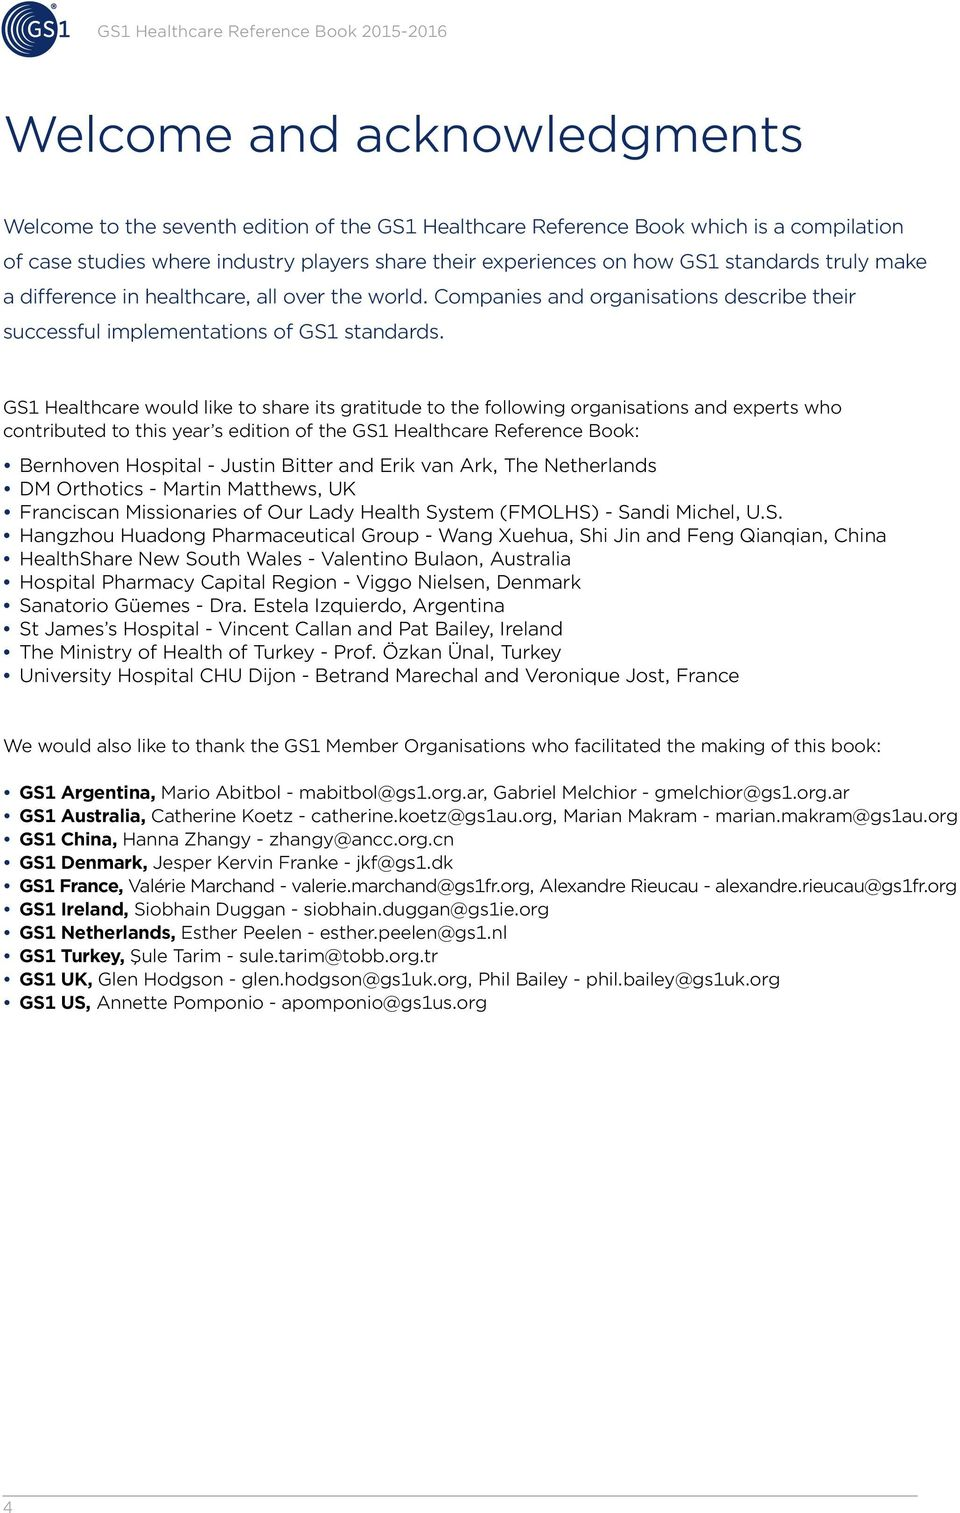 GS1 Healthcare would like to share its gratitude to the following organisations and experts who contributed to this year s edition of the GS1 Healthcare Reference Book: ybernhoven Hospital - Justin